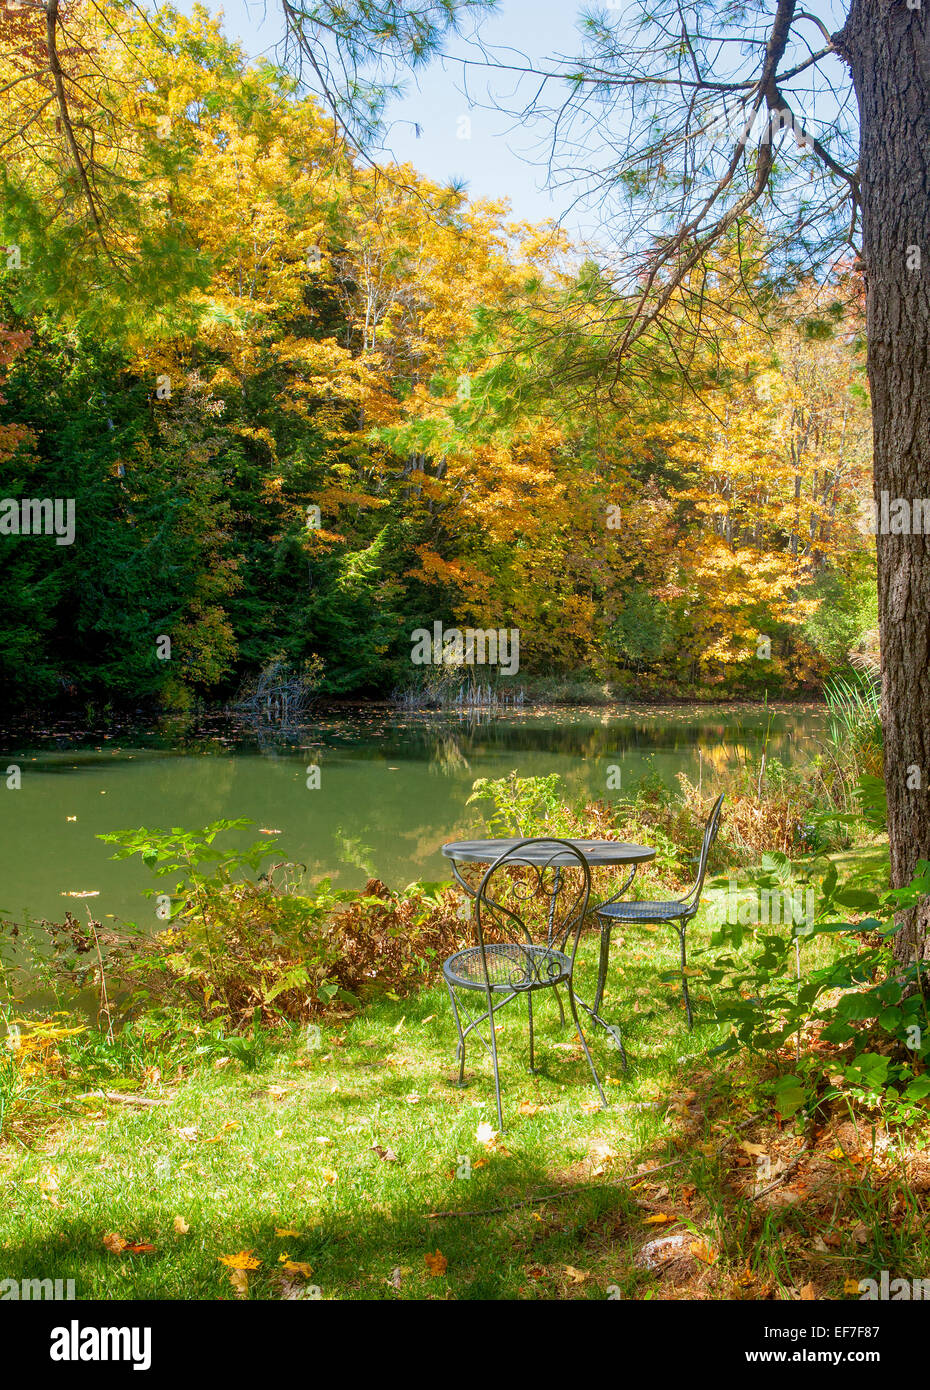 Awesome Black Wrought Iron Picnic Table And Chairs In A Woodland Setting Beside A  Small Pond In Vermont, United States Of America.